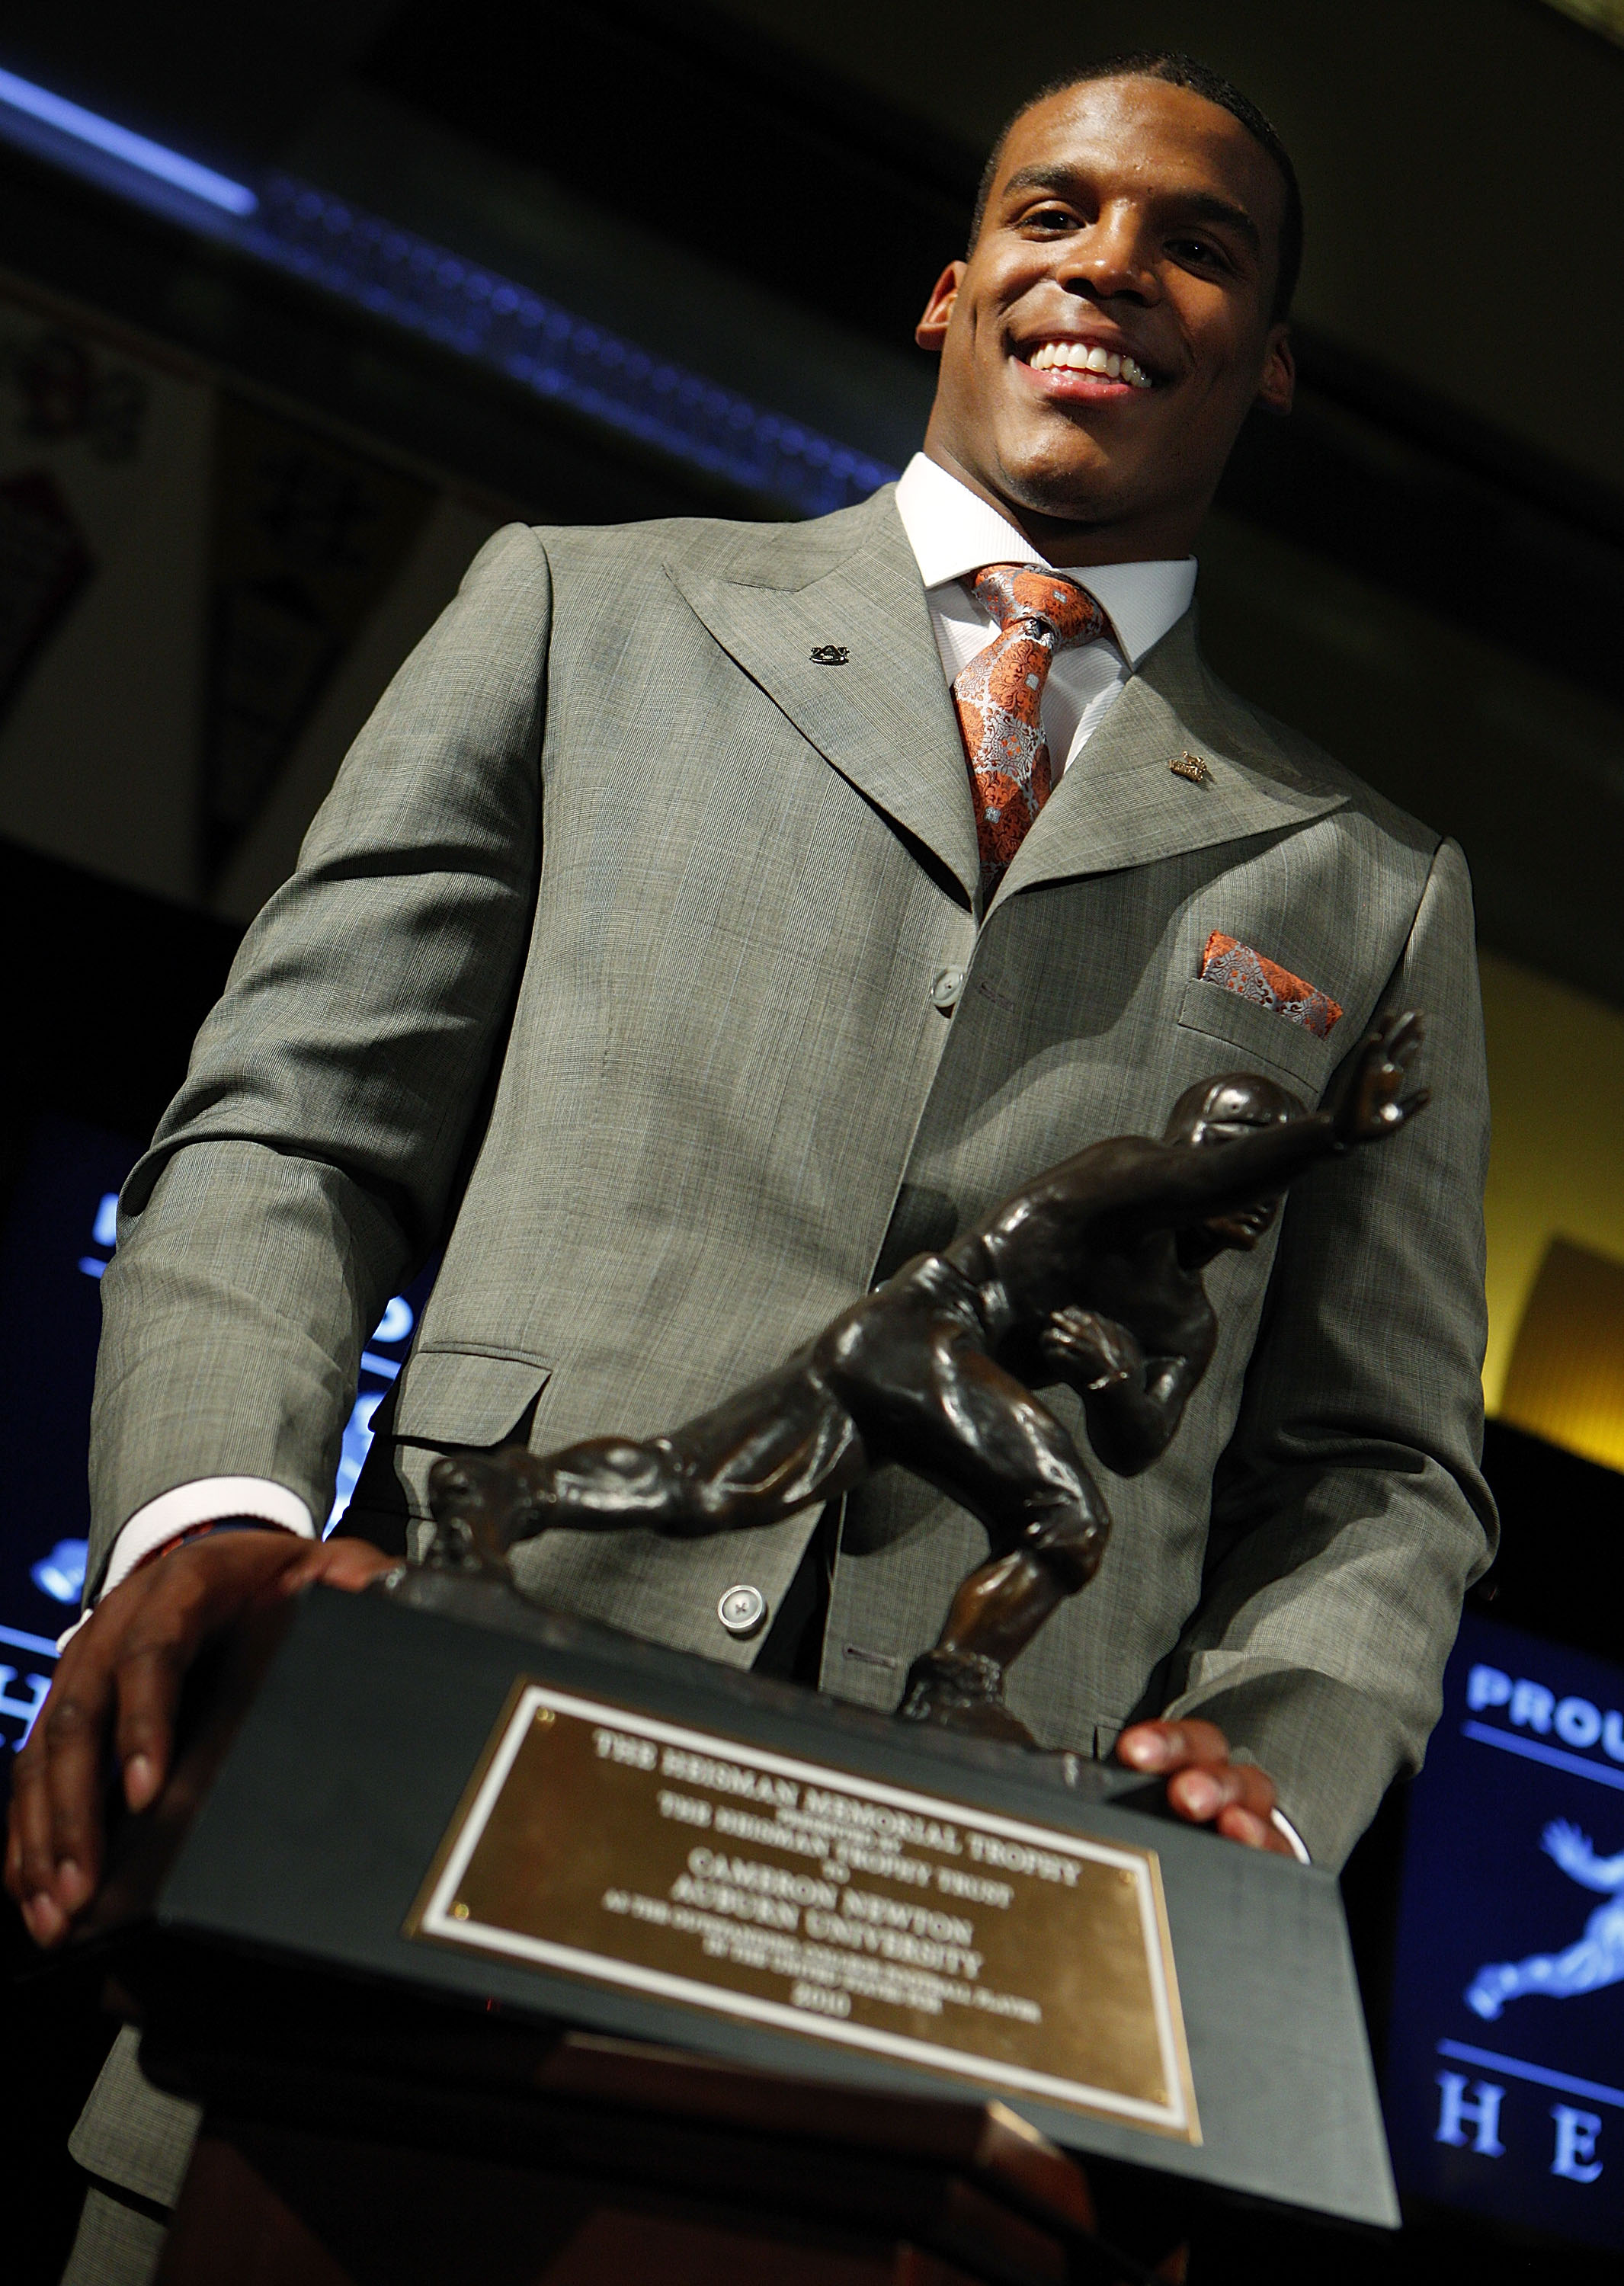 NEW YORK - DECEMBER 11:  Cam Newton, quarterback of the Auburn University Tigers, speaks after being awarded the 2010 Heisman Memorial Trophy Award on December 11, 2010 in New York City.  (Photo by Jeff Zelevansky/Getty Images)